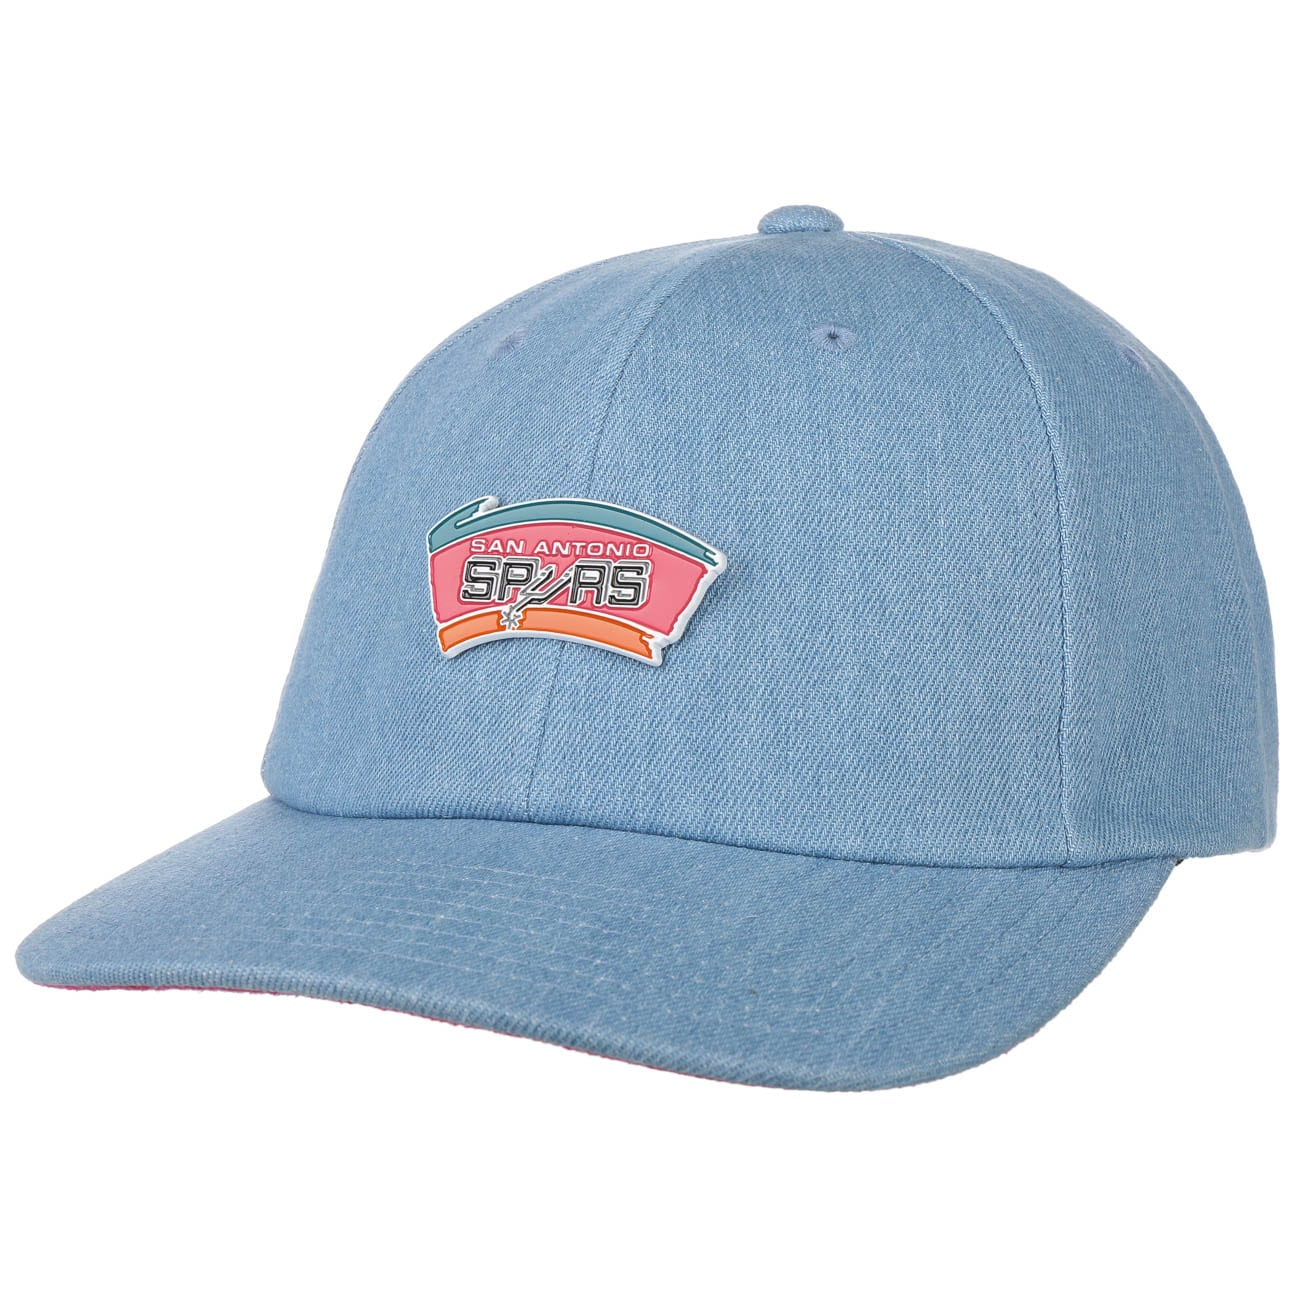 Gorra Denim HWC Spurs by Mitchell & Ness  Curved Brim Cap